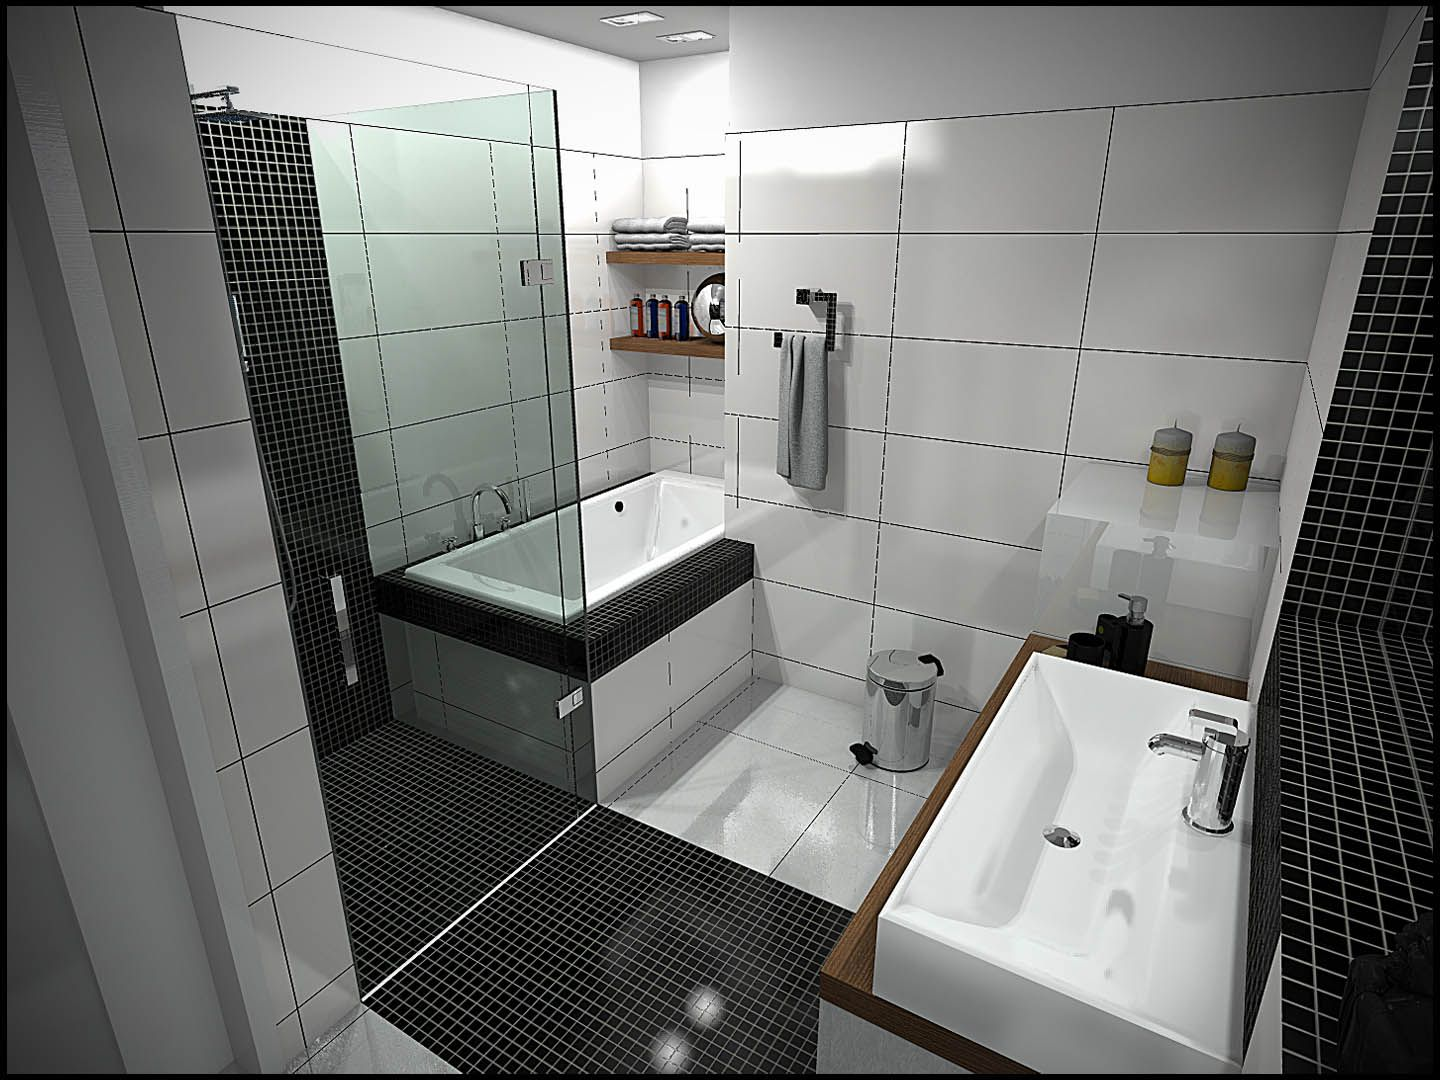 modish small bathroom interior design in black and white colors with black and white ceramic tiles